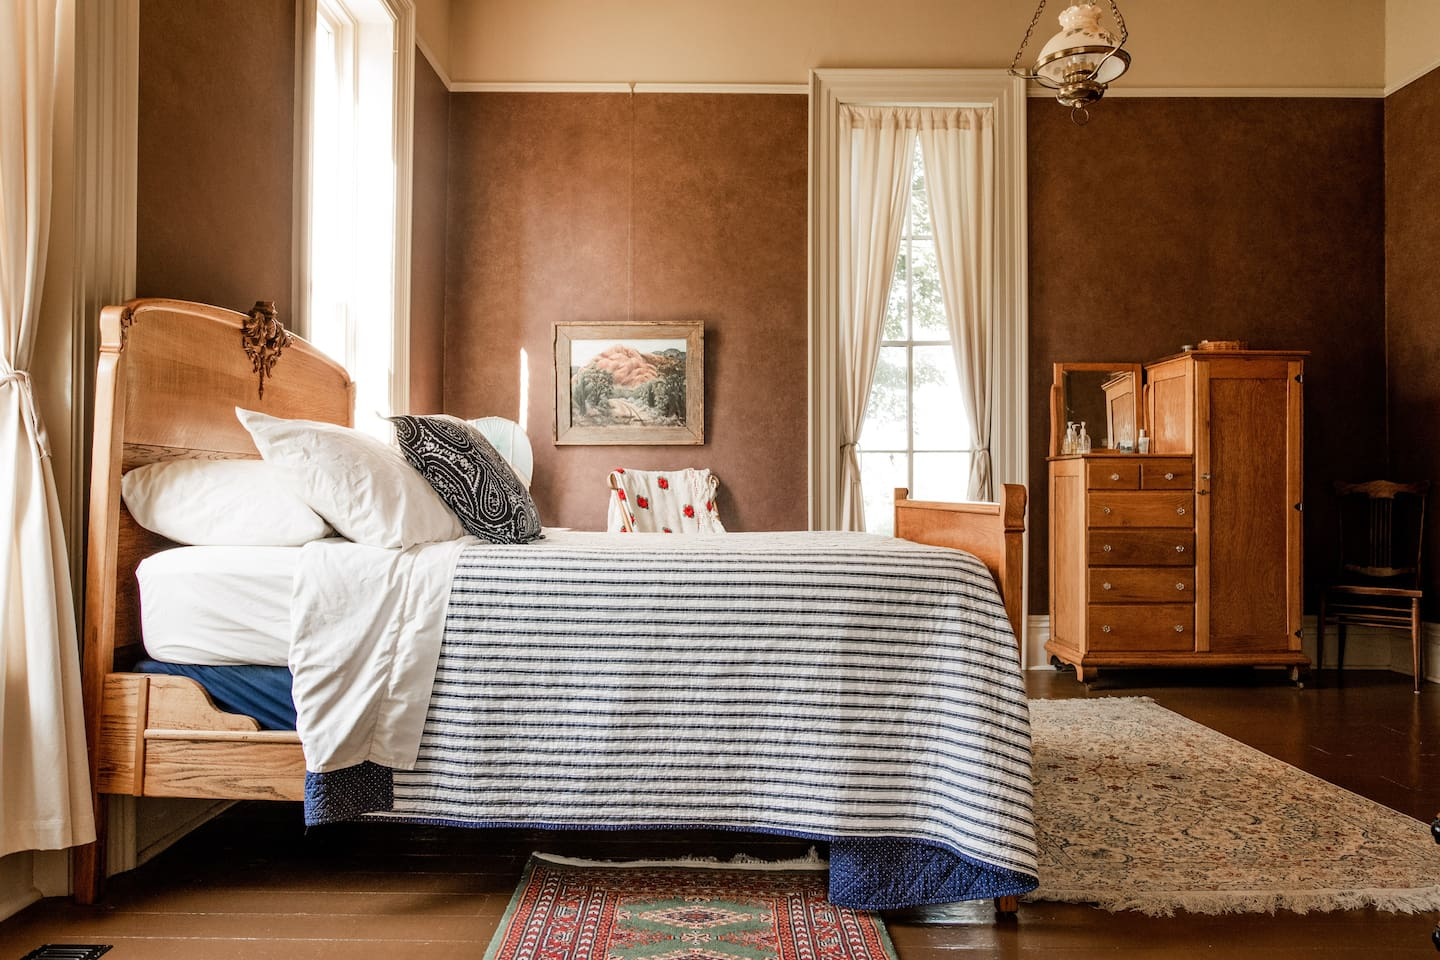 The Guest Room suite is full of oak antiques, including a full sized bed.